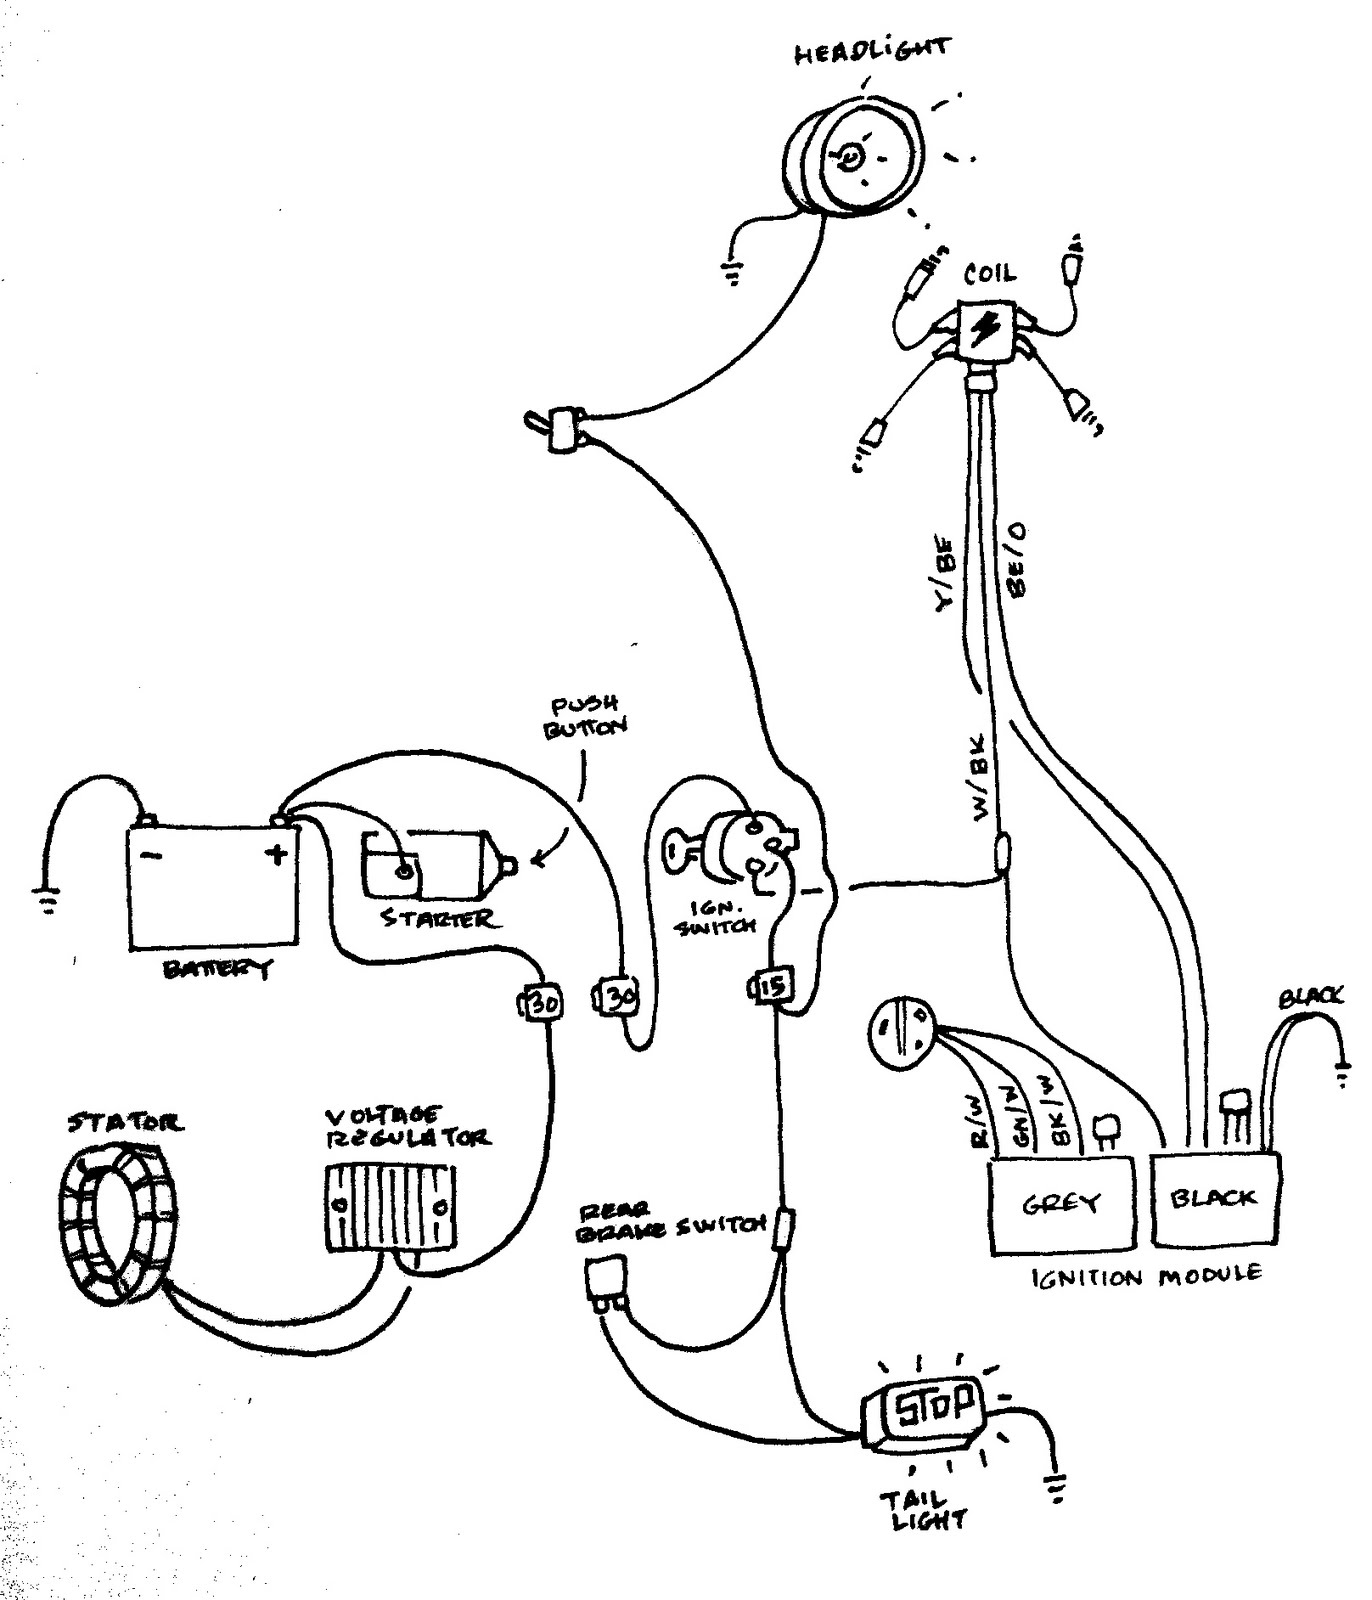 Motorcycle Wiring Harness Diagram : Cc pocket bike wiring diagram get free image about